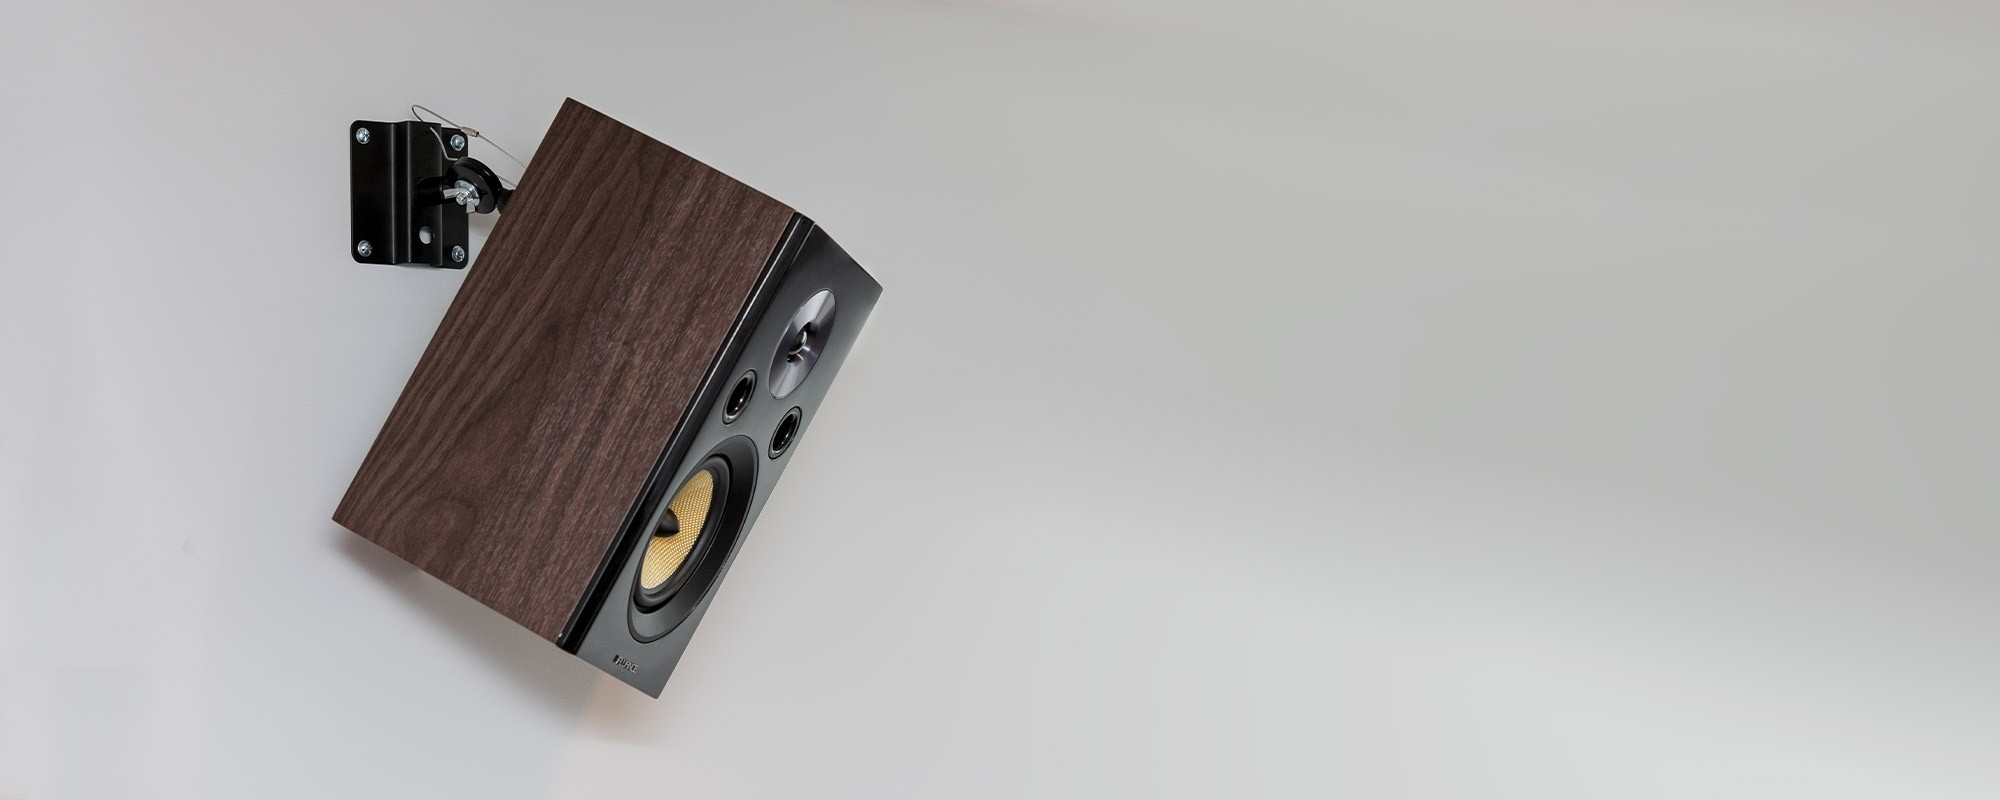 Metal Bookshelf & Satellite Speaker Adjustable Mounts - Lifestyle Desktop